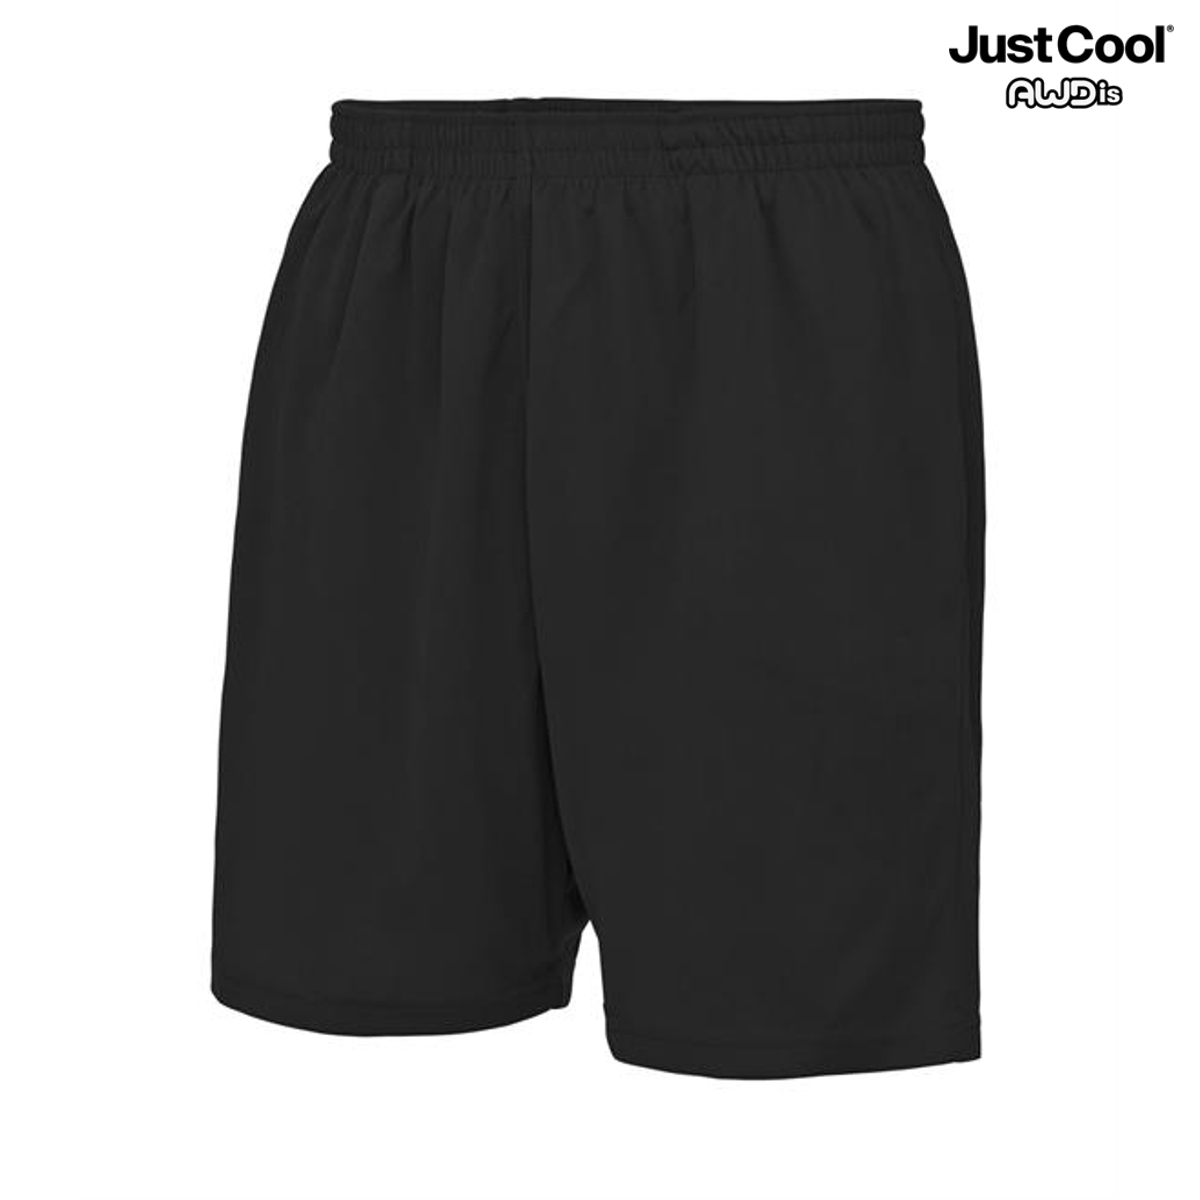 AWDis Childrens Just Cool Shorts